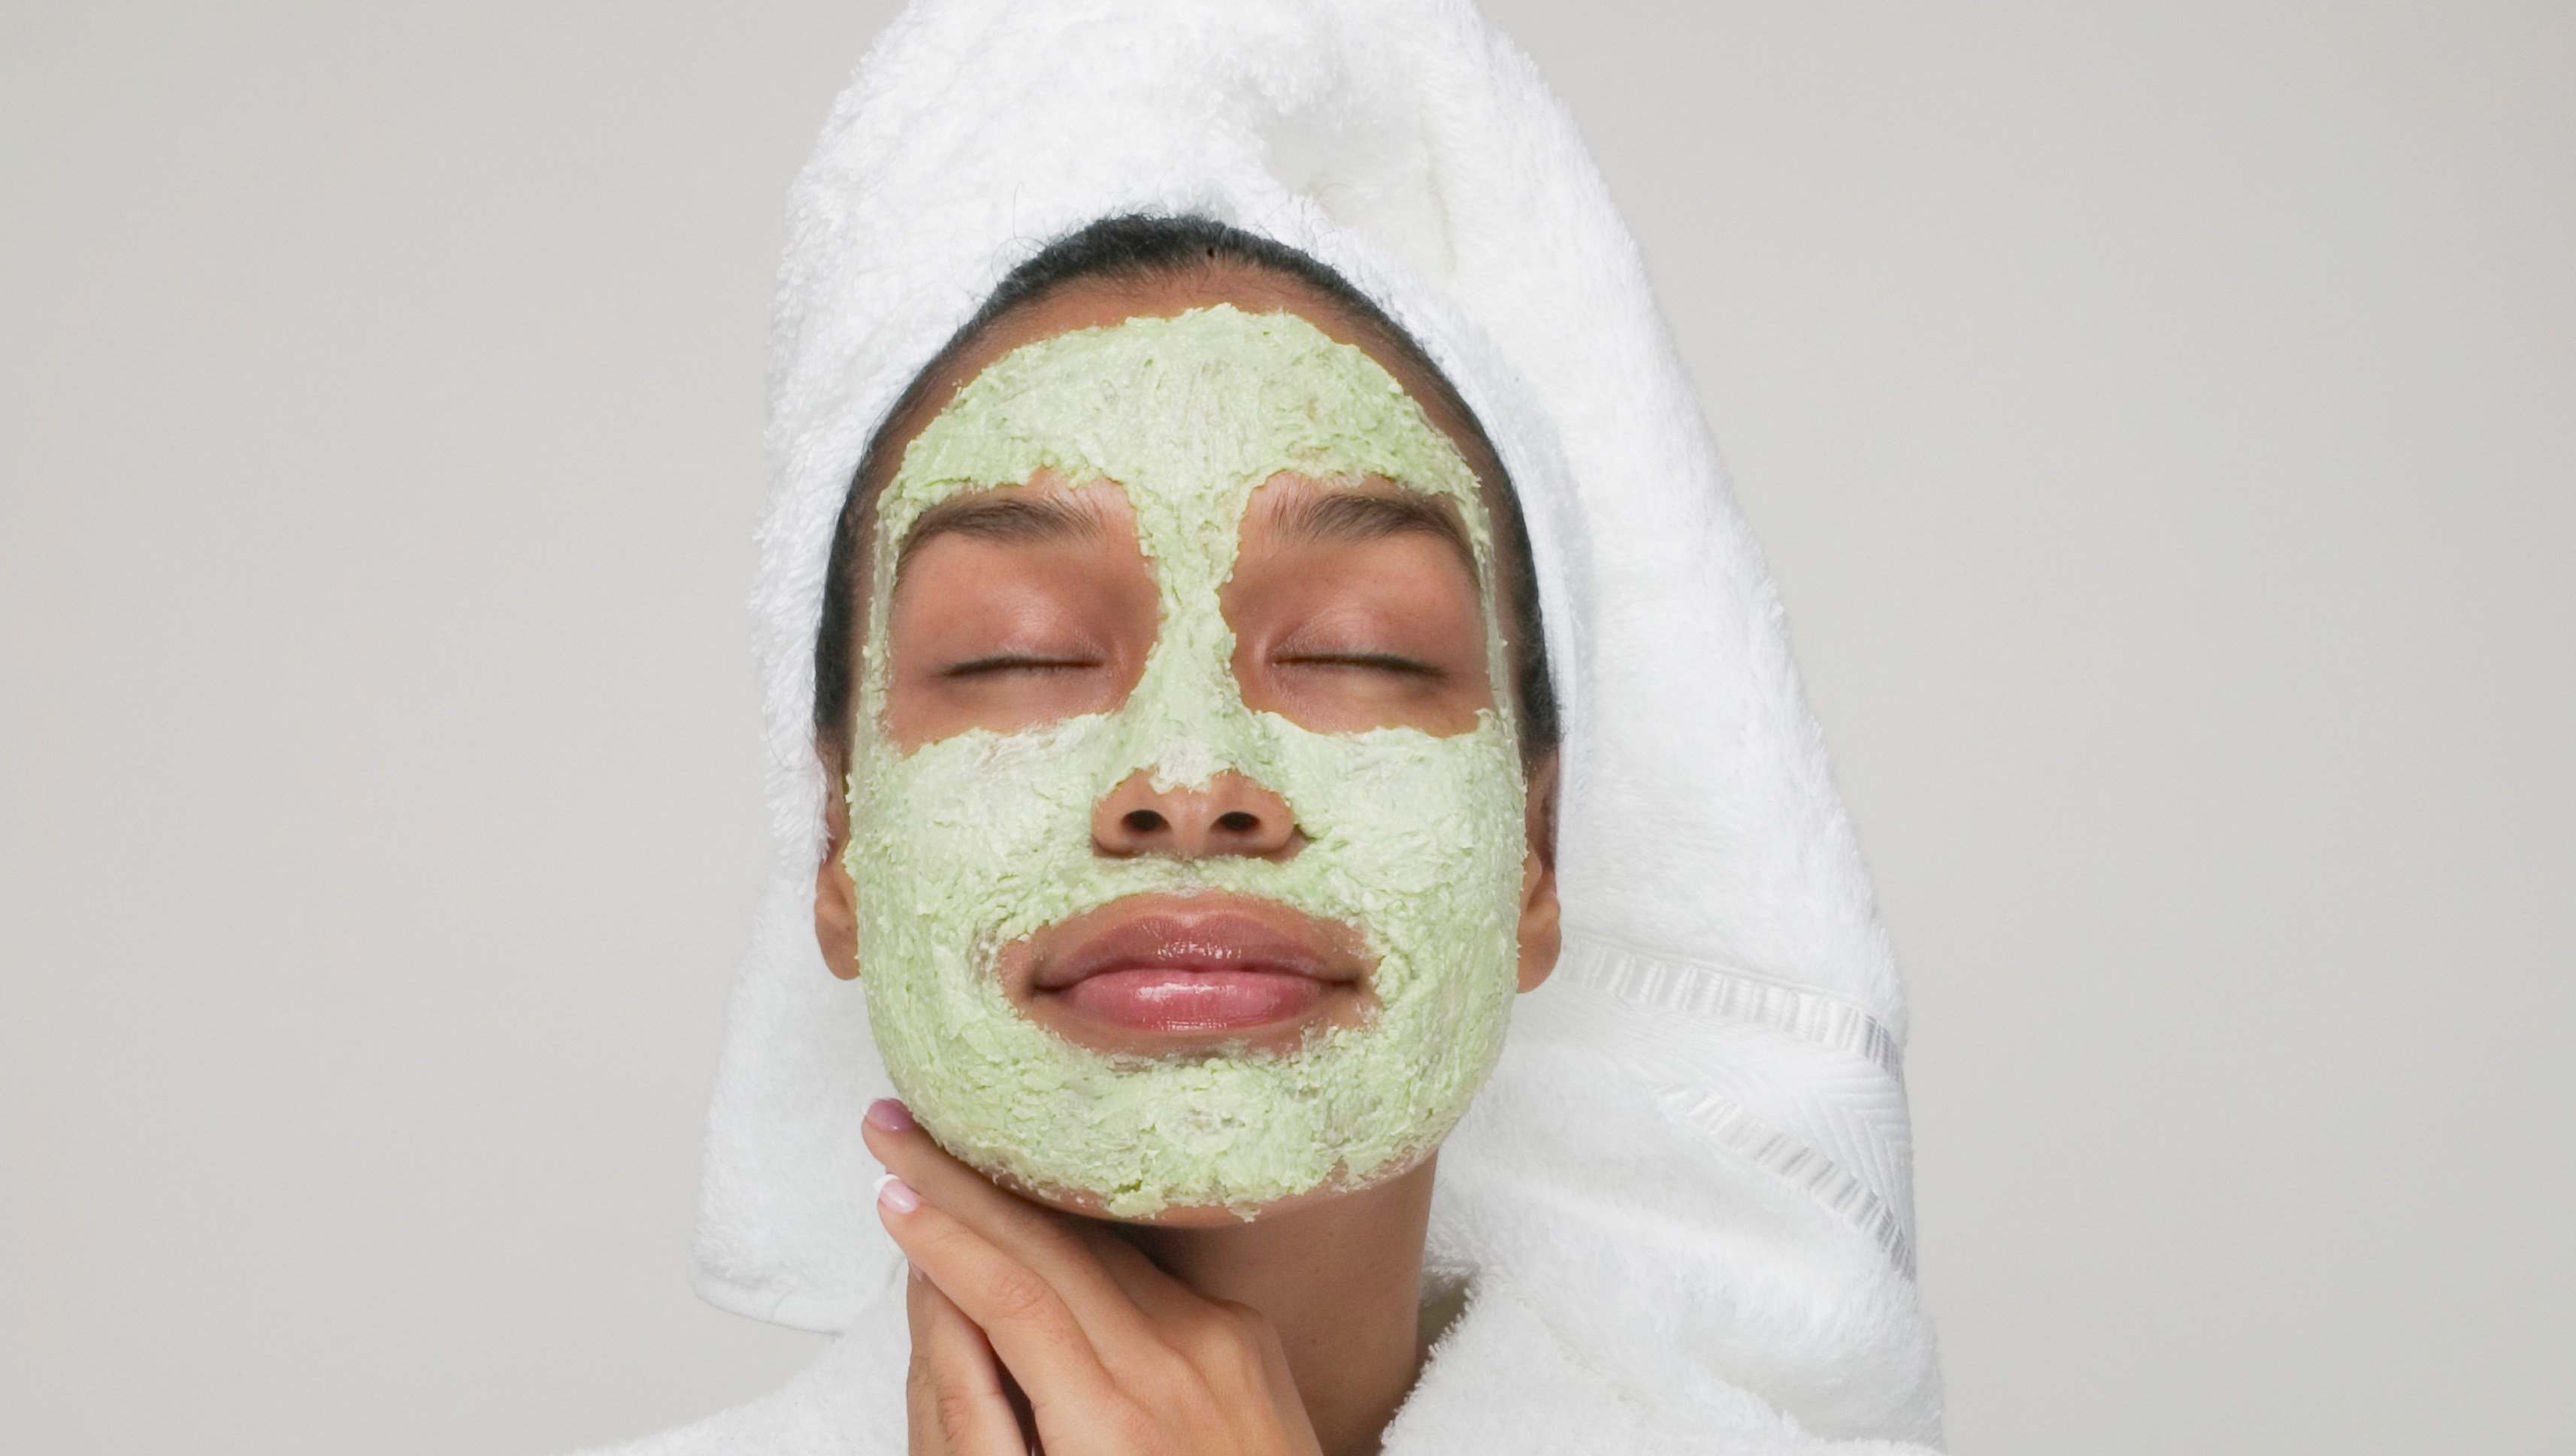 woman wearing a green face mask and white towel spa